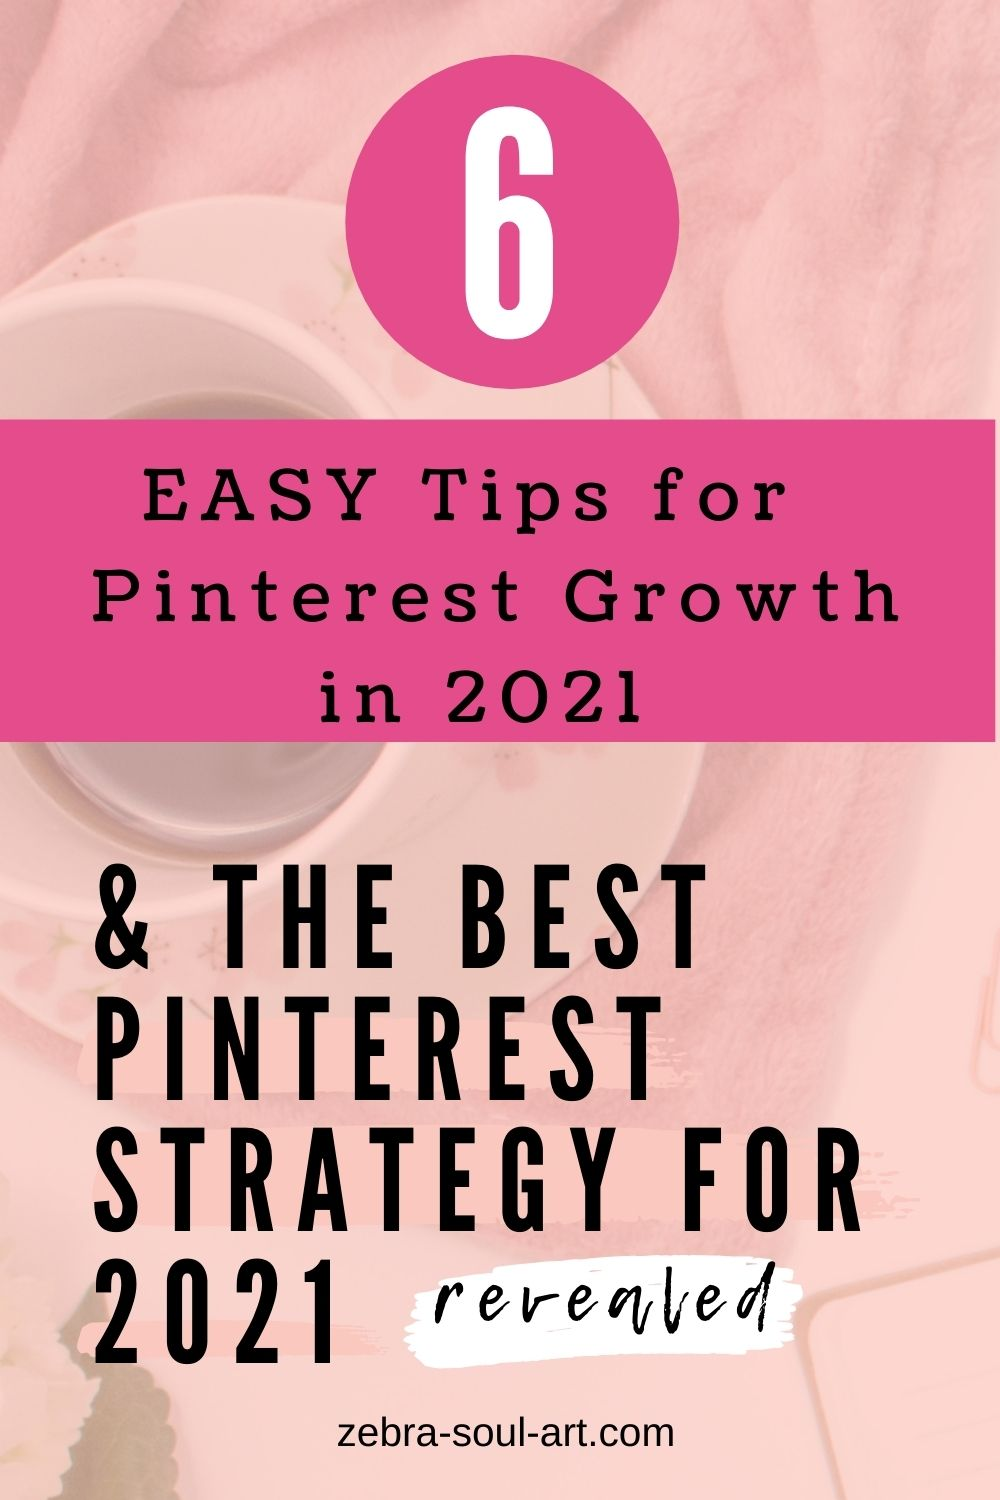 coffee on a table, pink colors. text saying easy tips for pinterest growth in 2021 and the best pinterest strategy for 2021, by zebra soul art